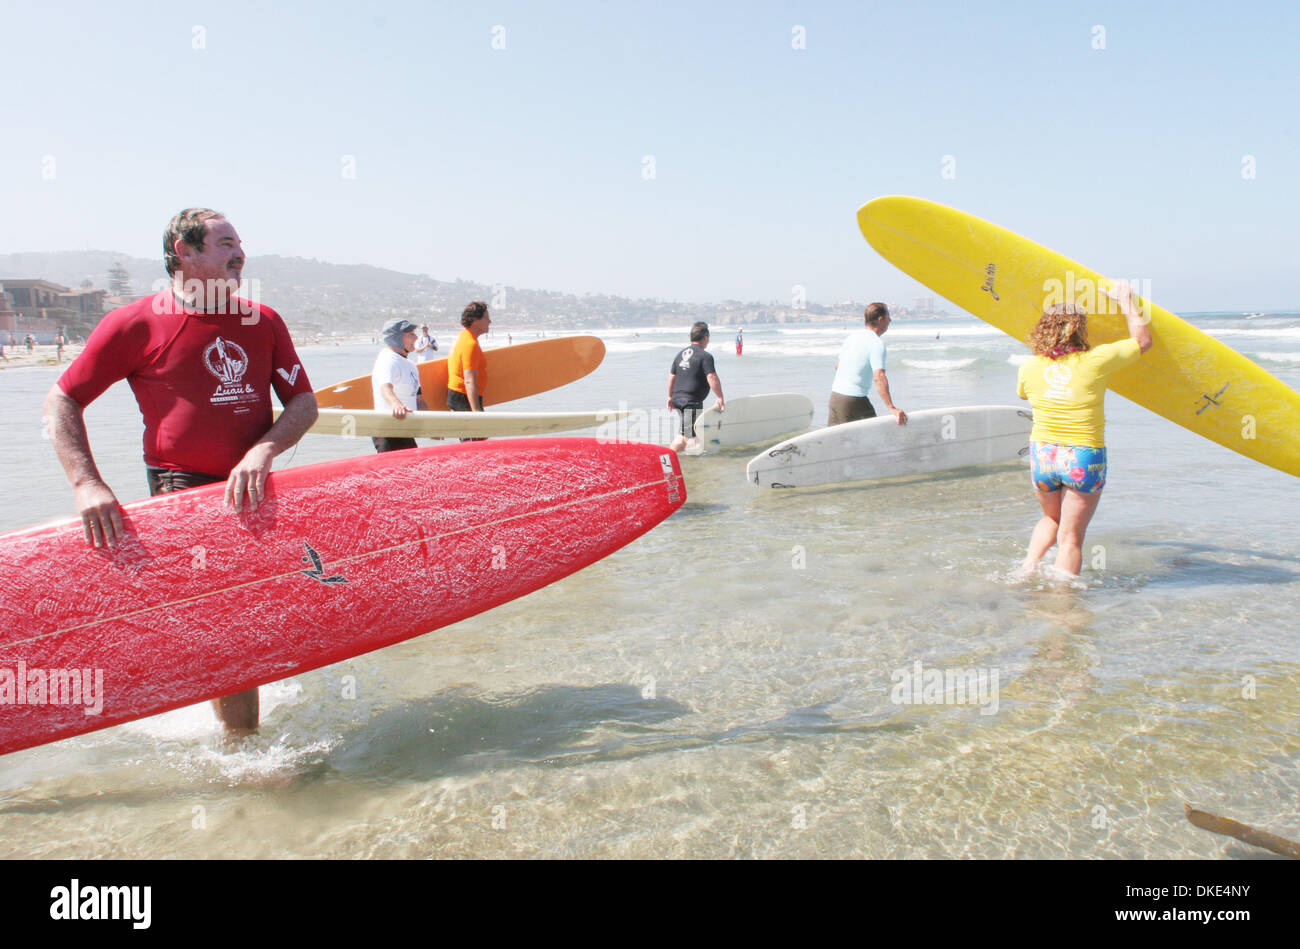 Aug 19, 2007 - La Jolla, CA, USA - Surboard shaper and owner of Rusty clothing RUSTY PREISENDORFER (red baord) with Surfer and cancer survivor JERICHO POPPLER (yellow board) at the 14th Annual Luau and Longboard Invitational at Scripps Institute of Oceanography. (Credit Image: © Kohlbauer Don/SDU-T/ZUMA Press) RESTRICTIONS:  LA and Orange County Papers RIGHTS OUT! and USA Tabloid R - Stock Image